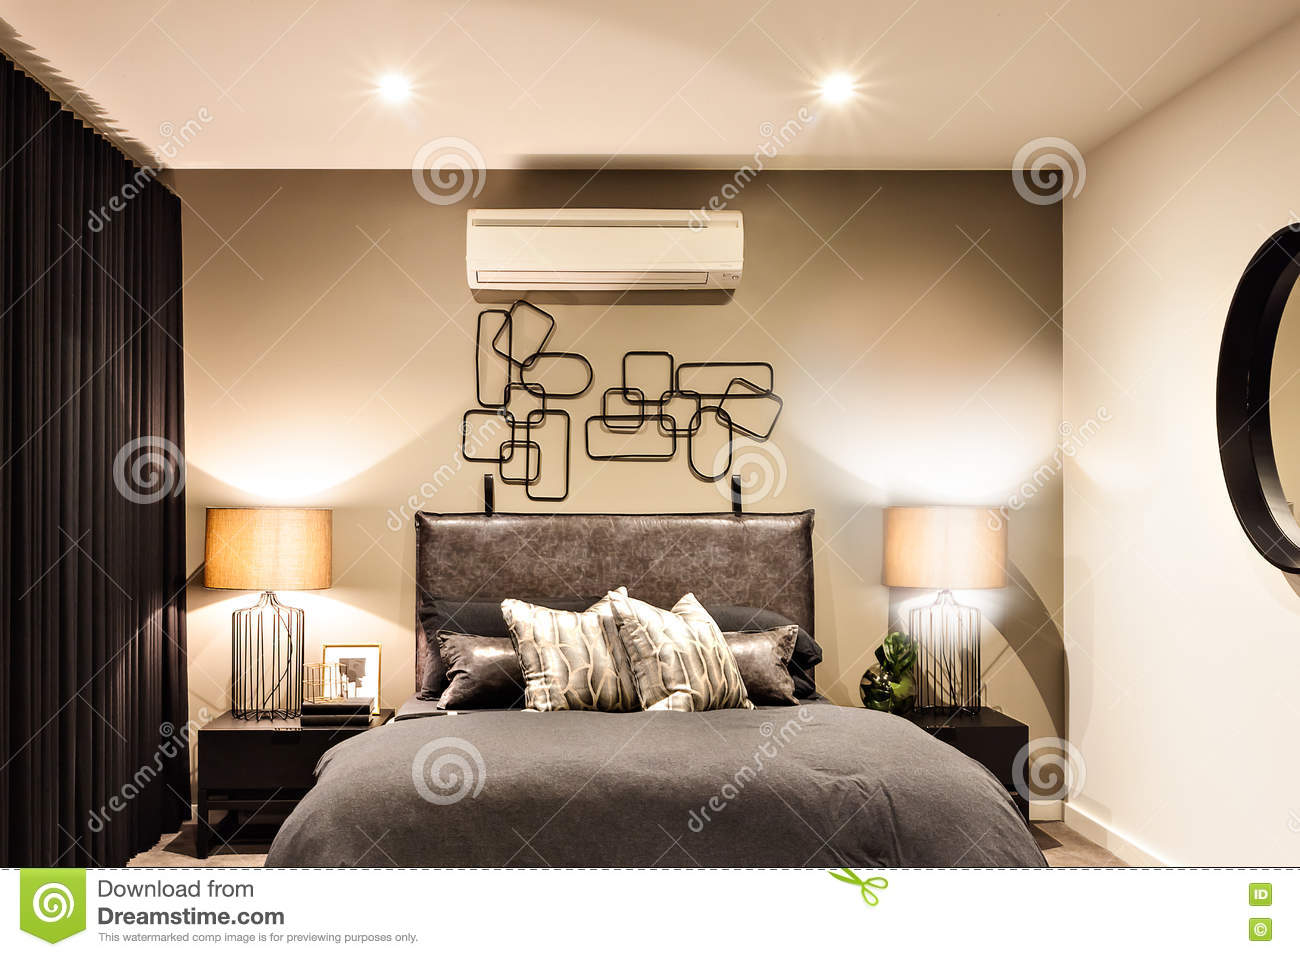 Modern Bedroom With Air Conditioner In A Luxury House Stock Image ...